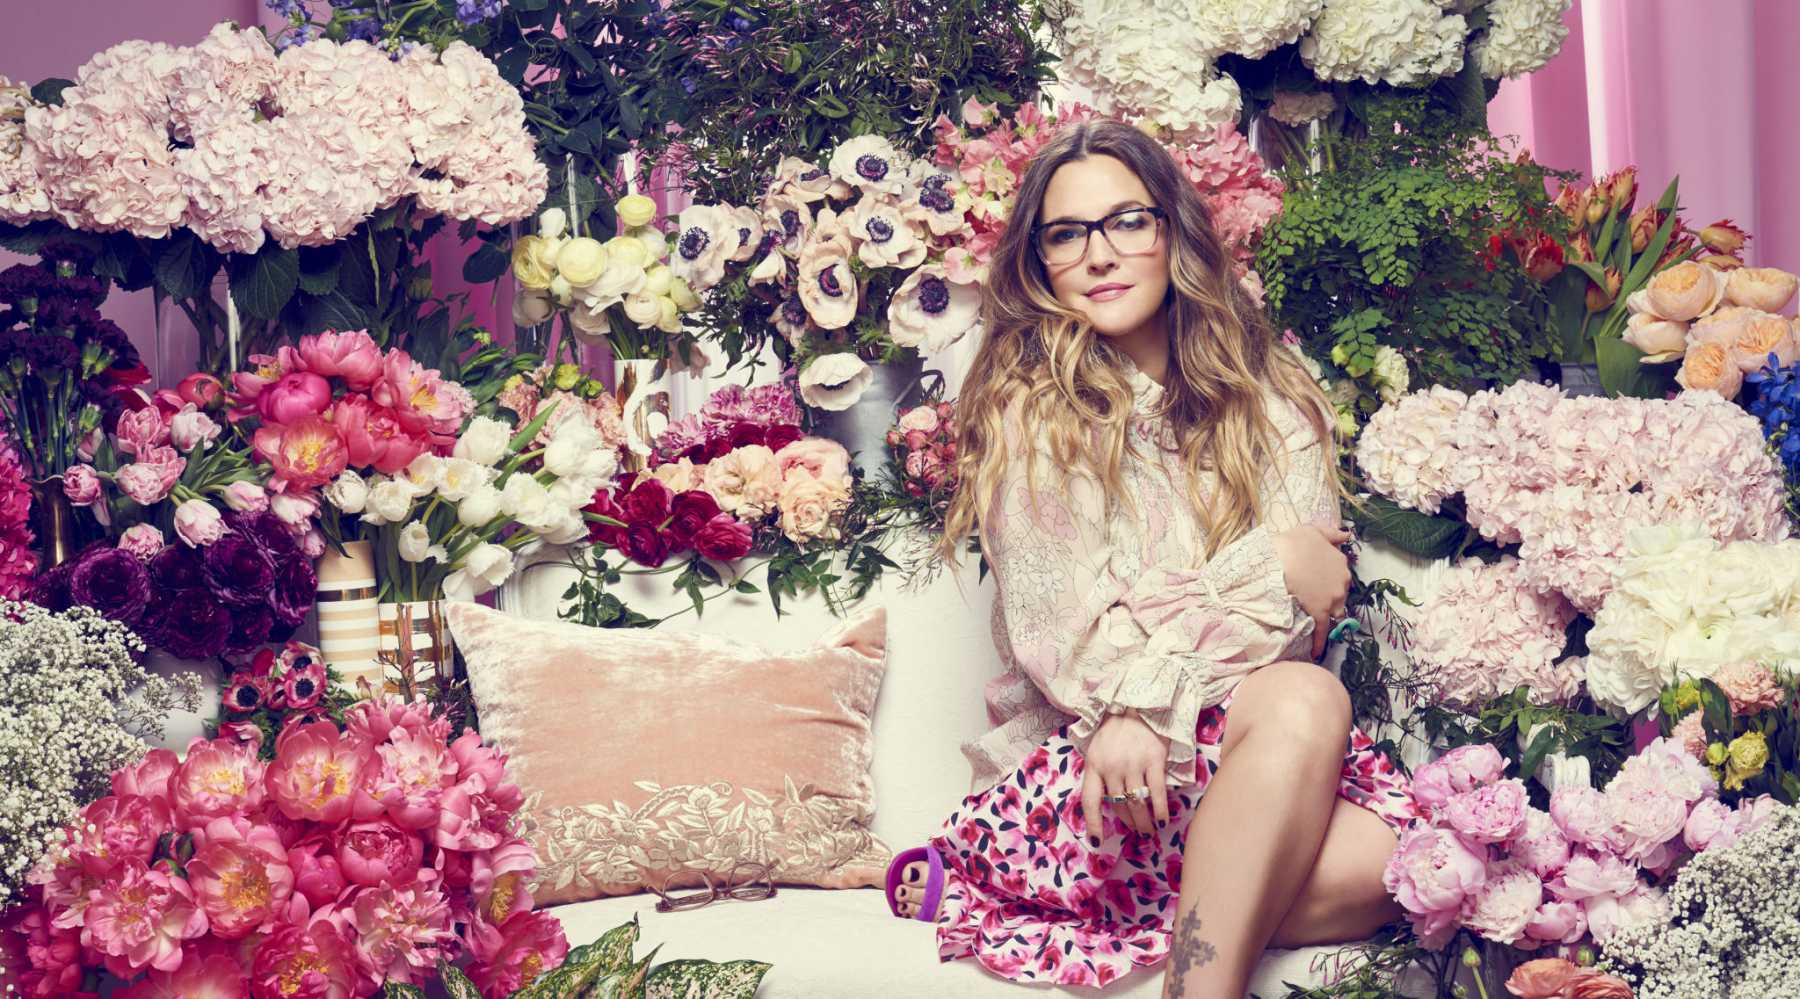 Drew Barrymore Launches Flower Press | Drew Barrymore Magazine